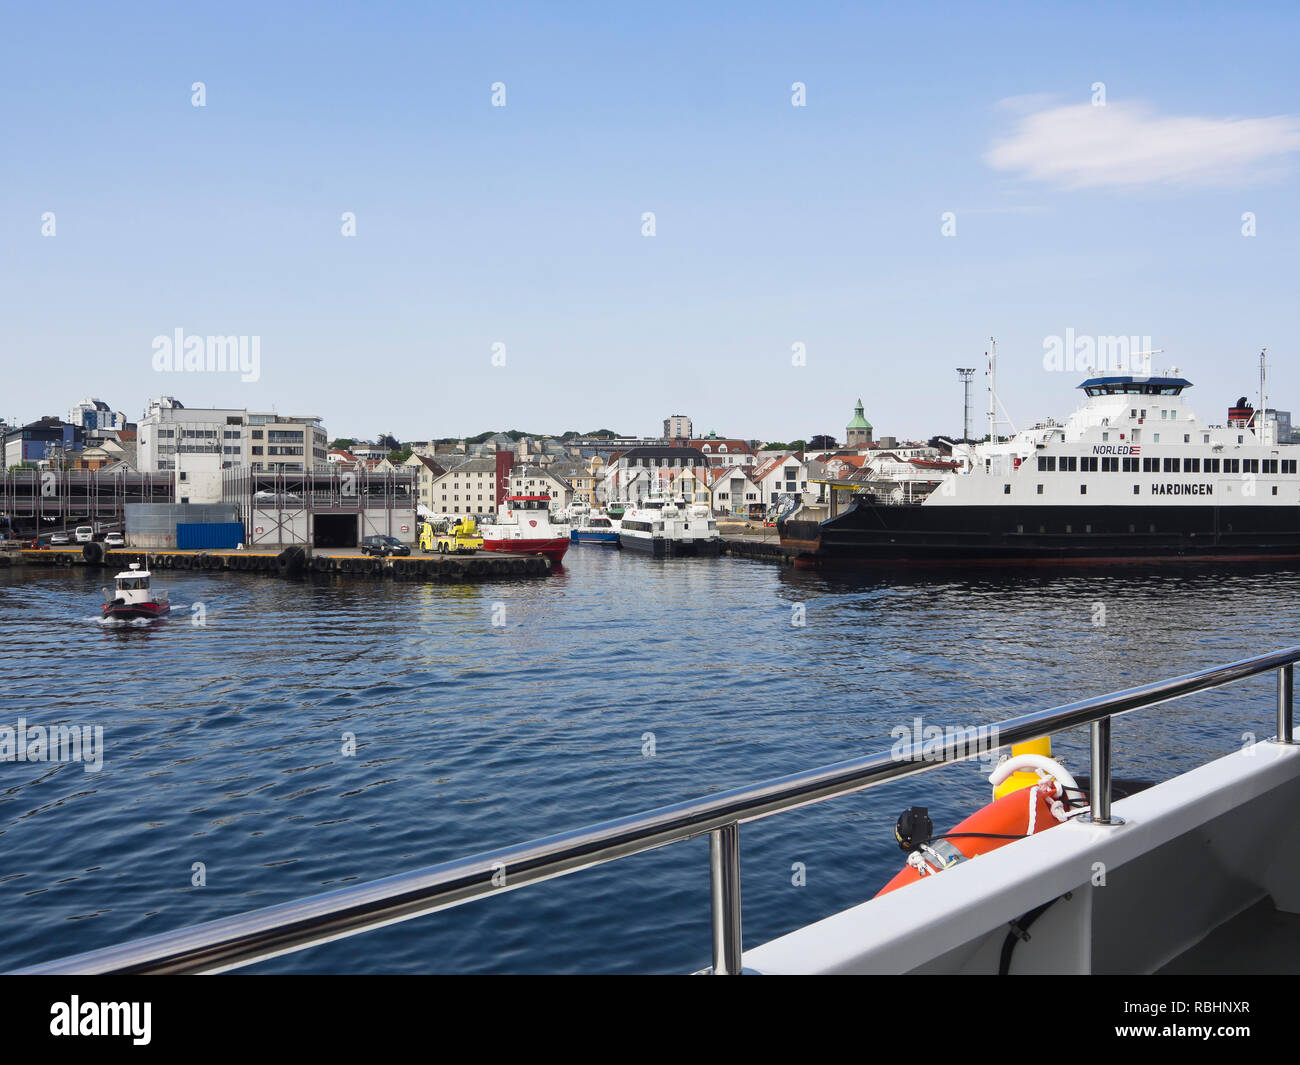 Entering the harbor in the Norwegian city of Stavanger by the North Sea, car ferry and the fire departments boat Vekteren along the quay - Stock Image